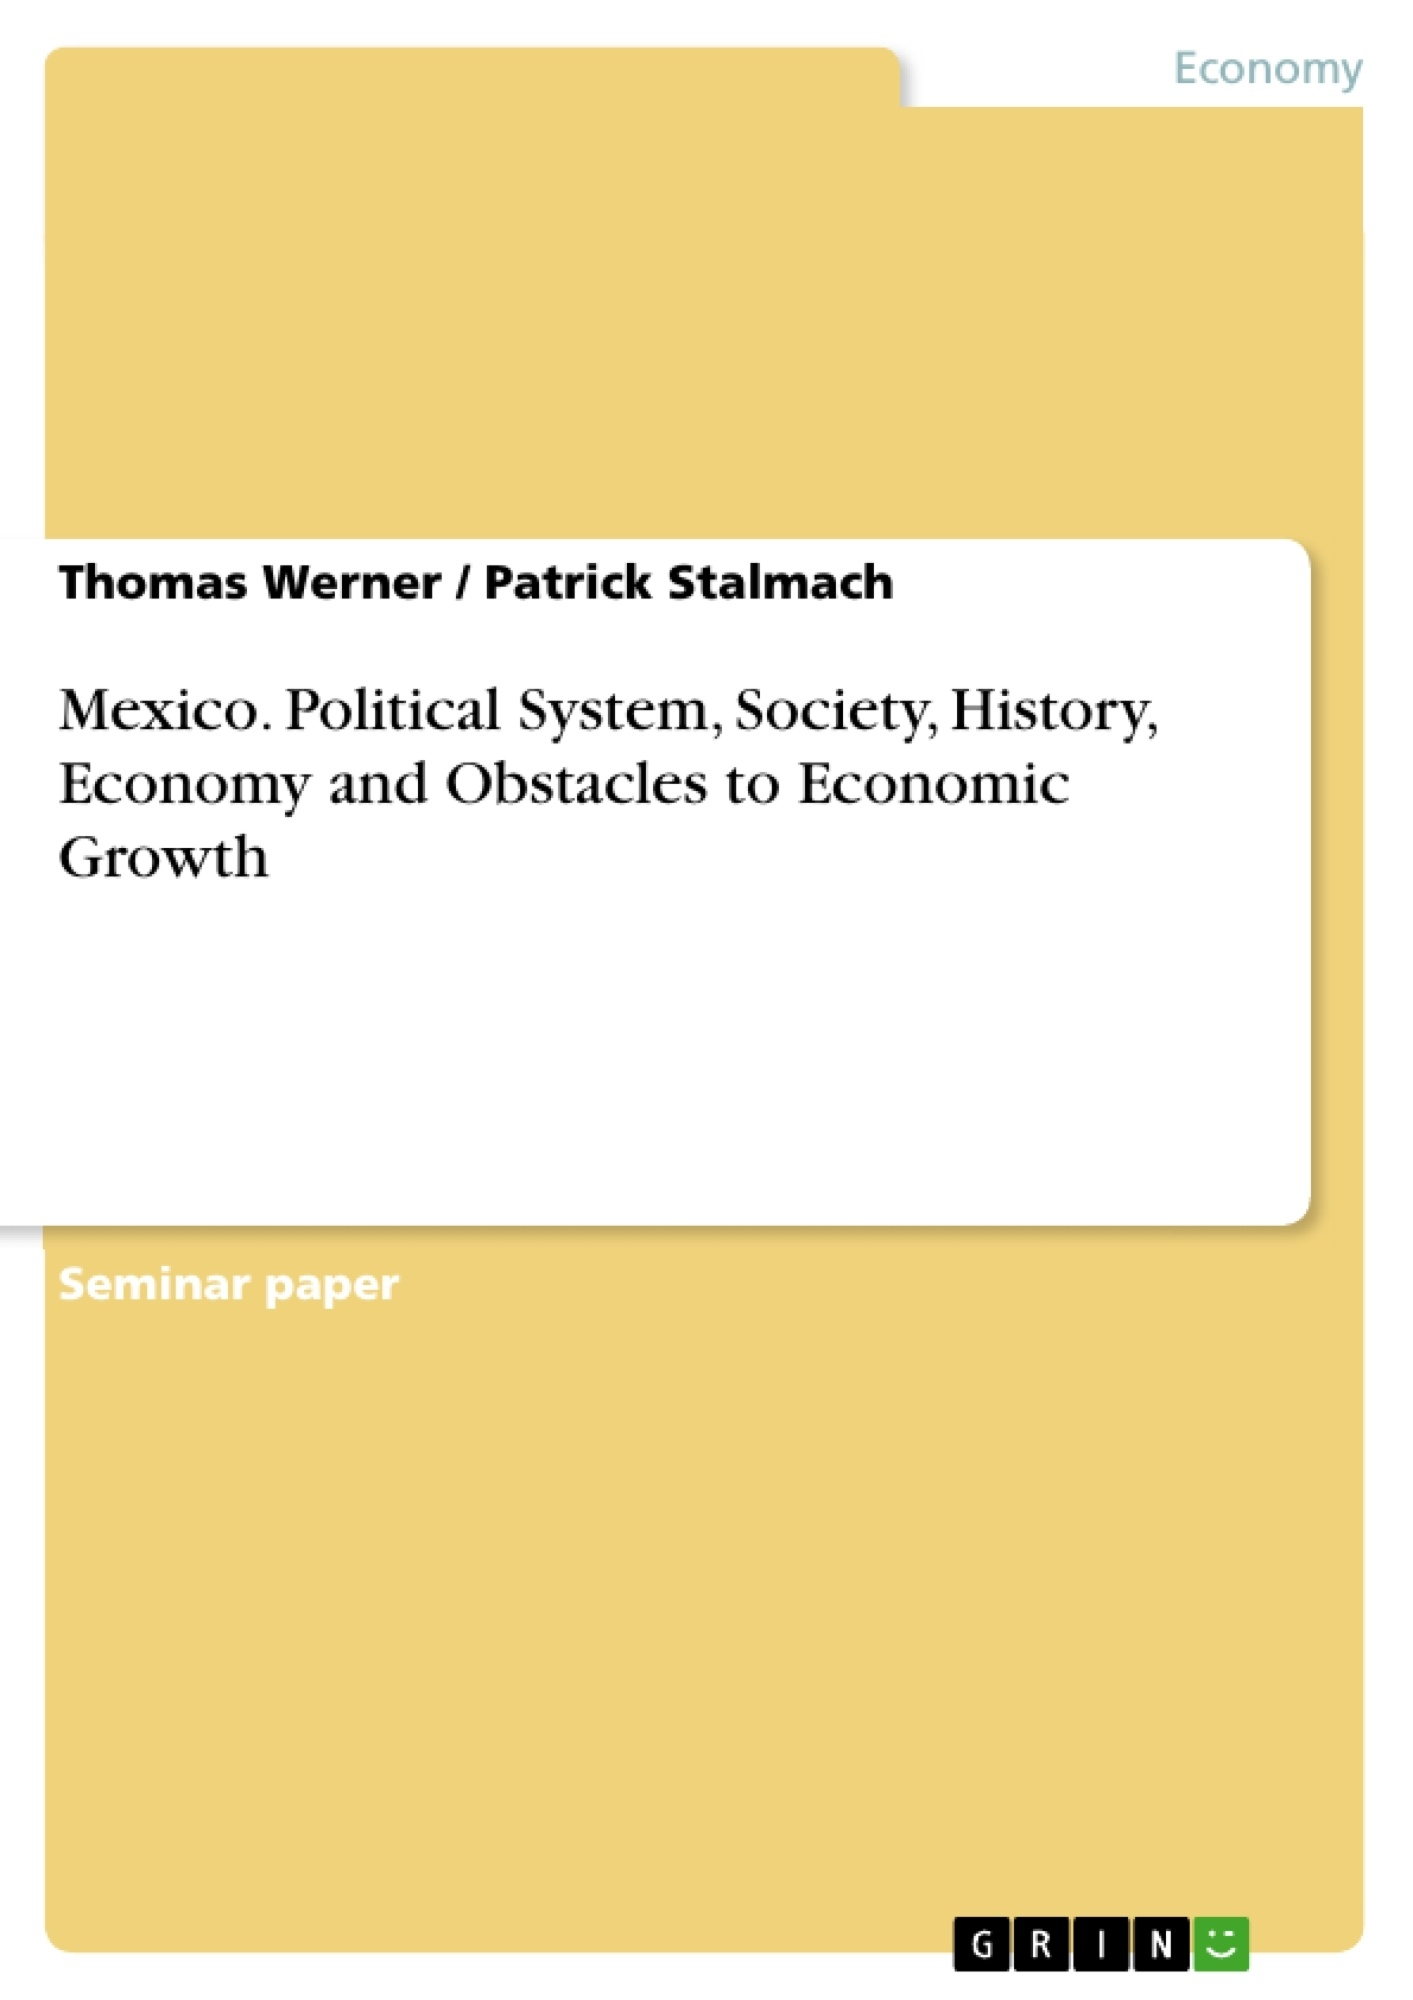 Title: Mexico. Political System, Society, History, Economy and Obstacles to Economic Growth